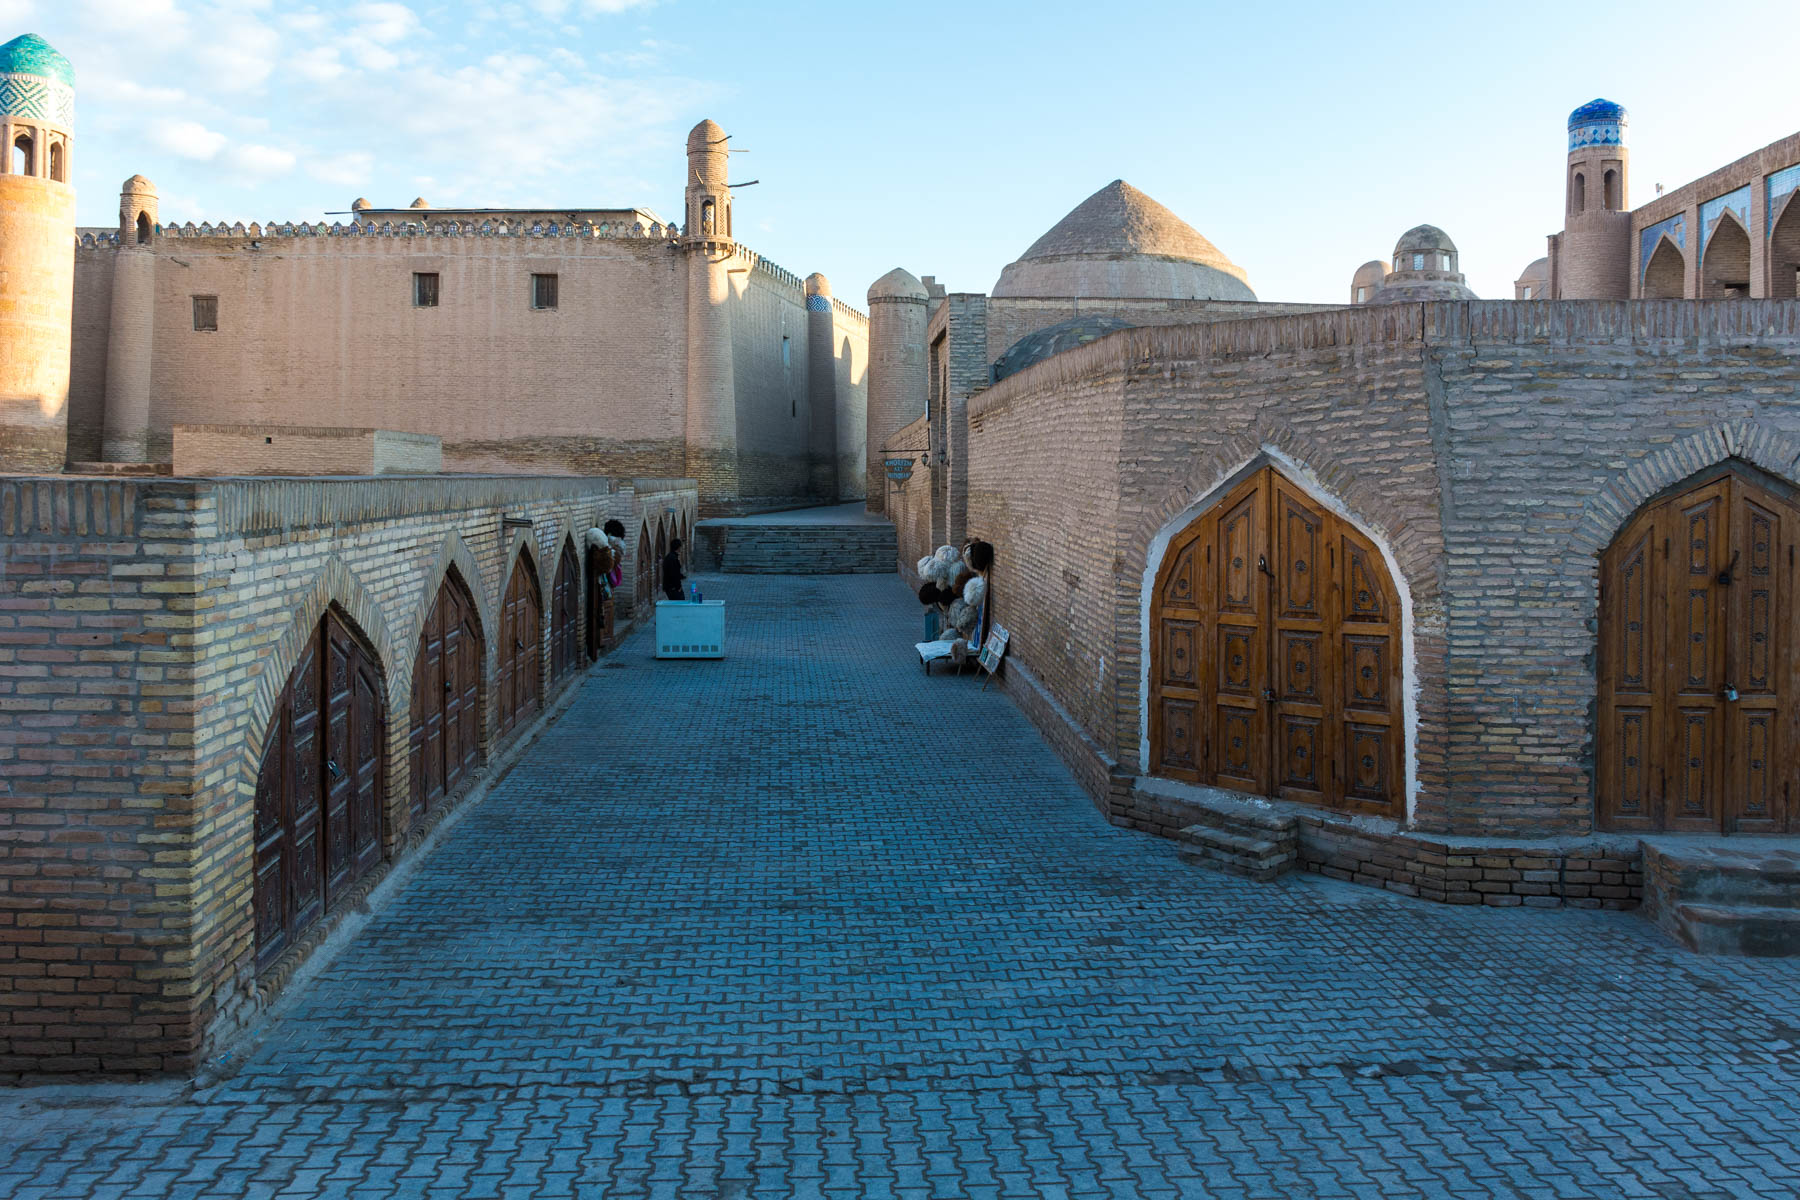 Khiva at sunrise - Lost With Purpose